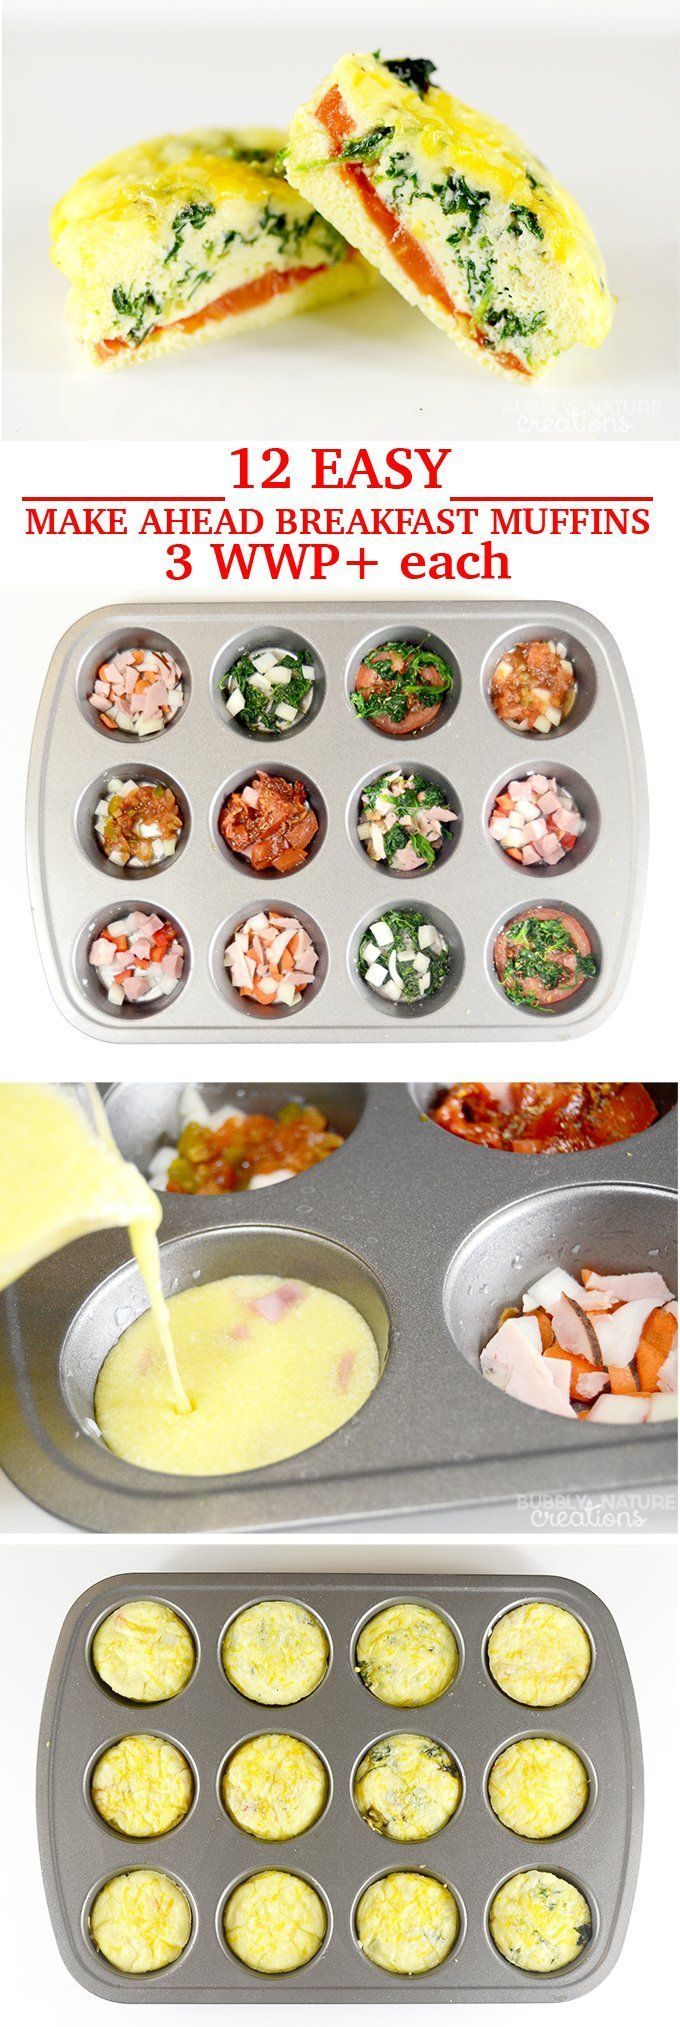 12 Easy Make Ahead Breakfast Muffins only 3 WW Plus Points #WeightWatchers #lowcarb #protein